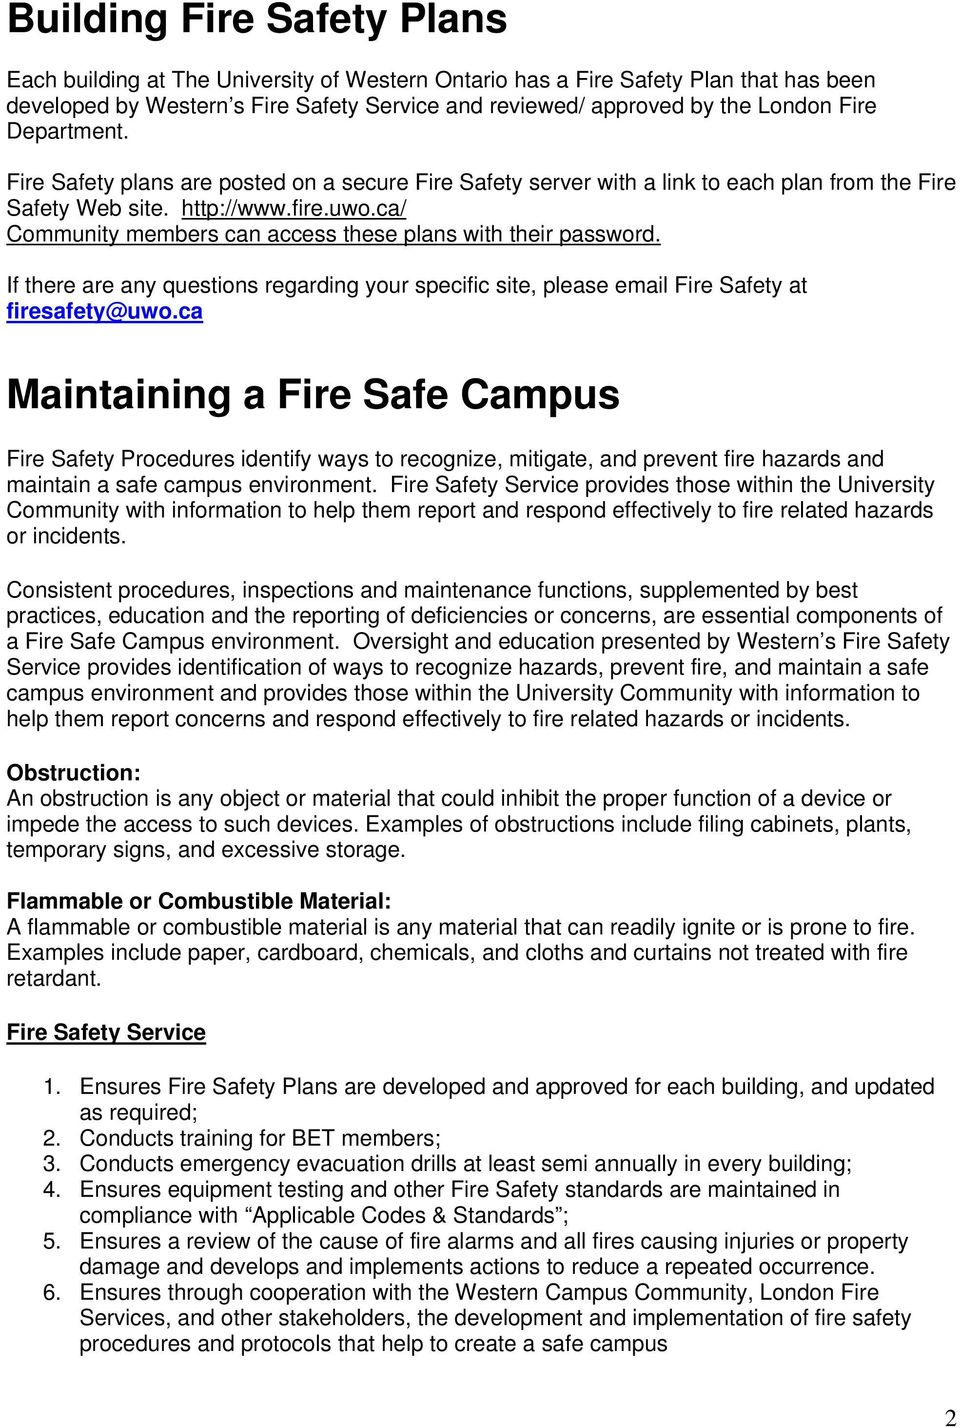 ca/ Community members can access these plans with their password. If there are any questions regarding your specific site, please email Fire Safety at firesafety@uwo.